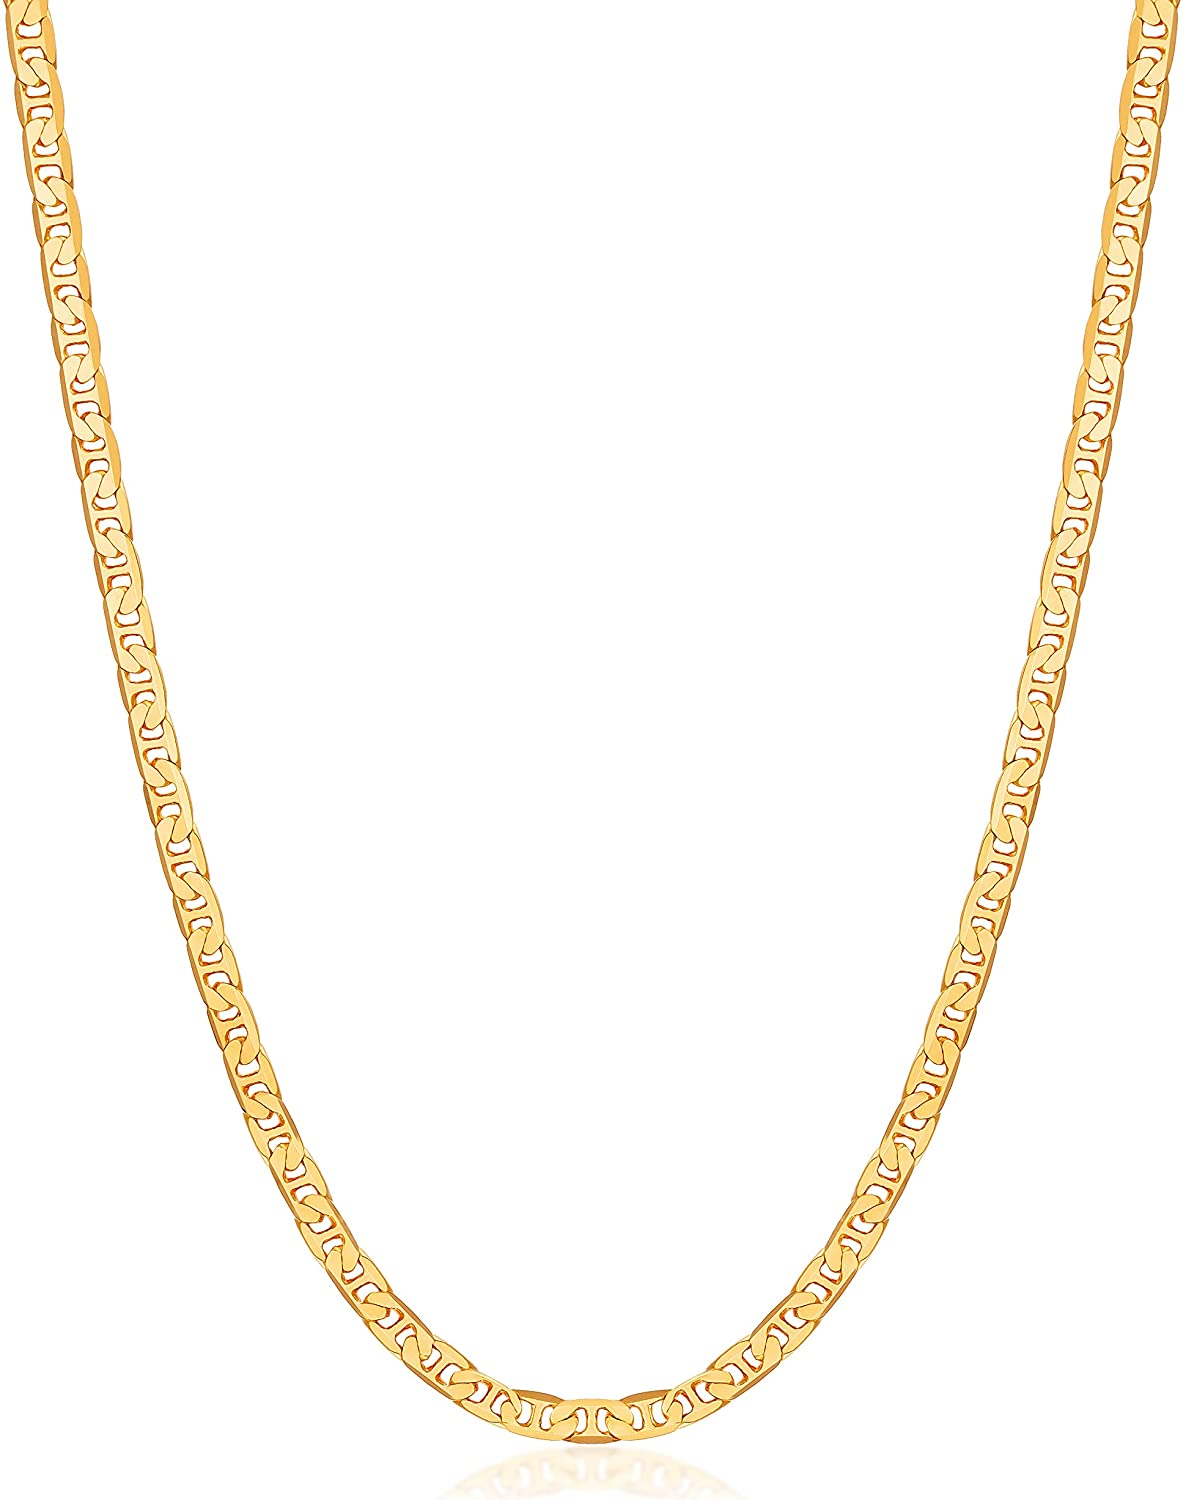 Barzel 18K Gold Plated Flat Mariner/Marina 3MM, 3.5MM, 4.5MM, 5MM, 6MM, 8MM Chain Necklace